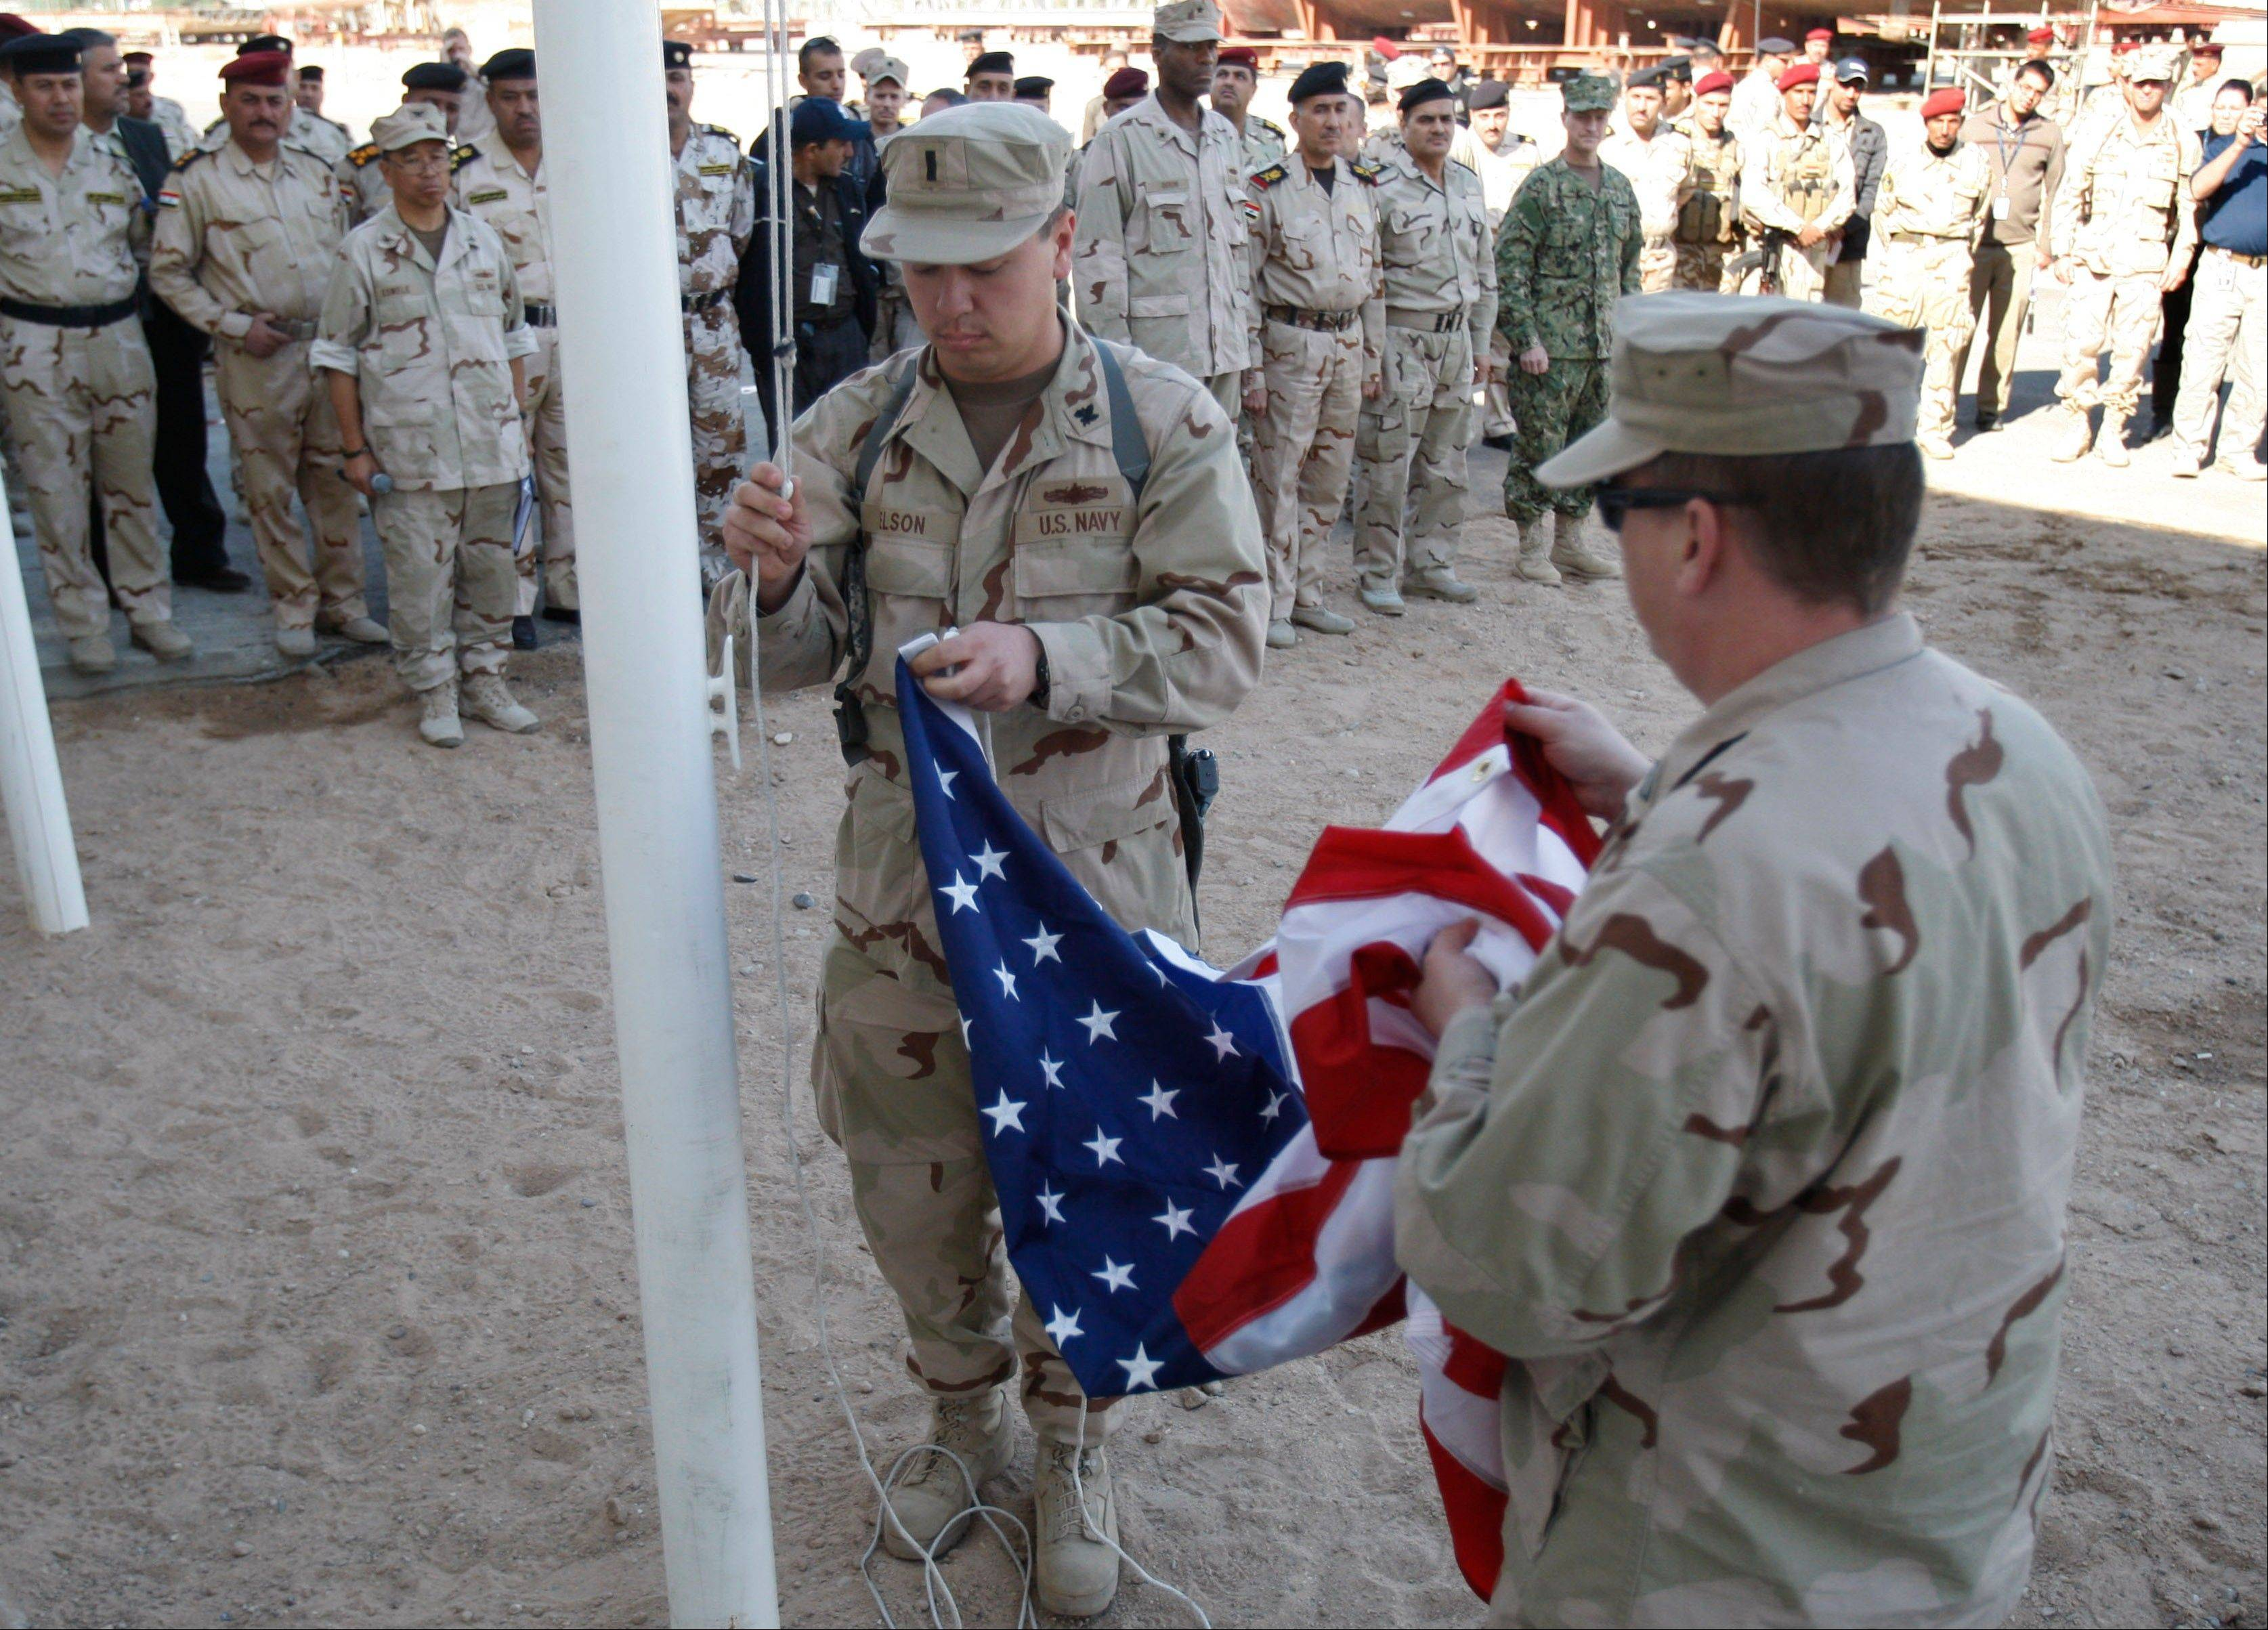 U.S. servicemen fold the American flag after it was lowered during the handover ceremony of a military base in Basra, Iraq, Dec. 1, 2011.